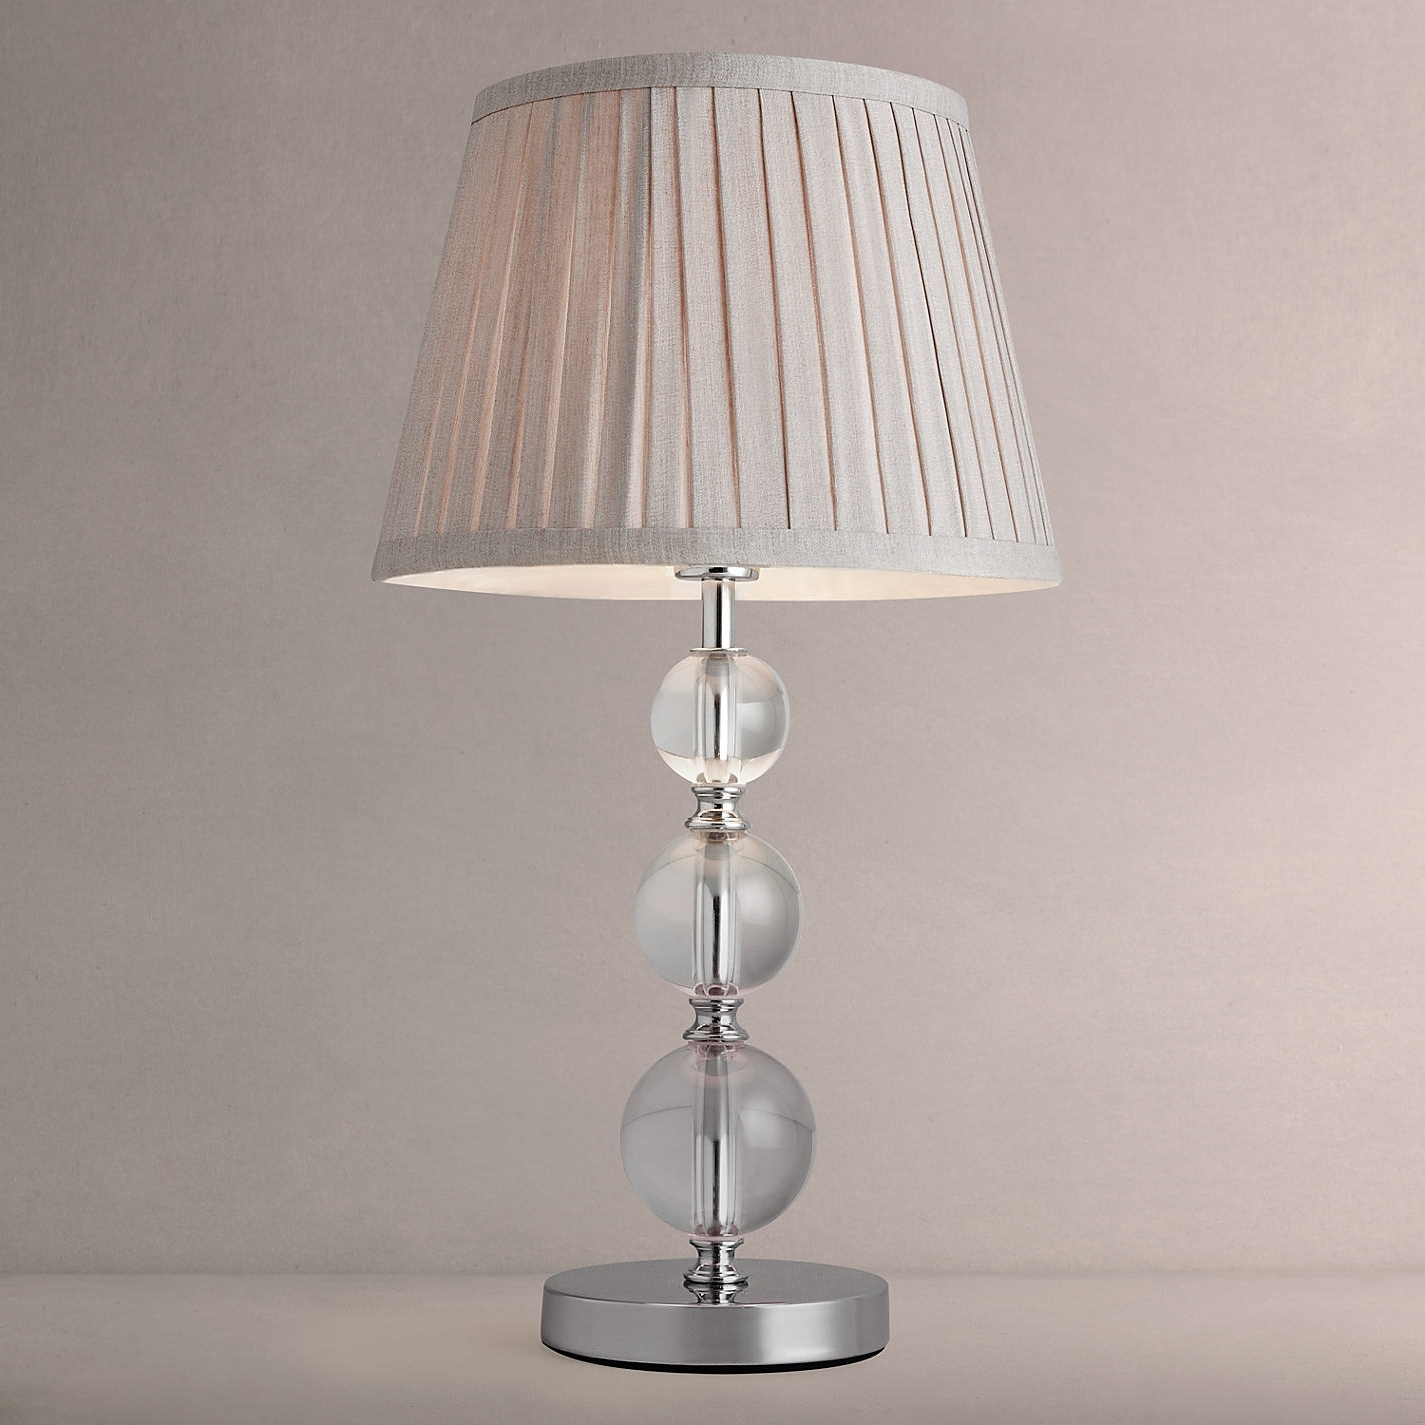 Favorite John Lewis Table Lamps For Living Room With Regard To Lamp : Base World Market Lamps Shade Small For Living Room Tiffany (View 5 of 15)